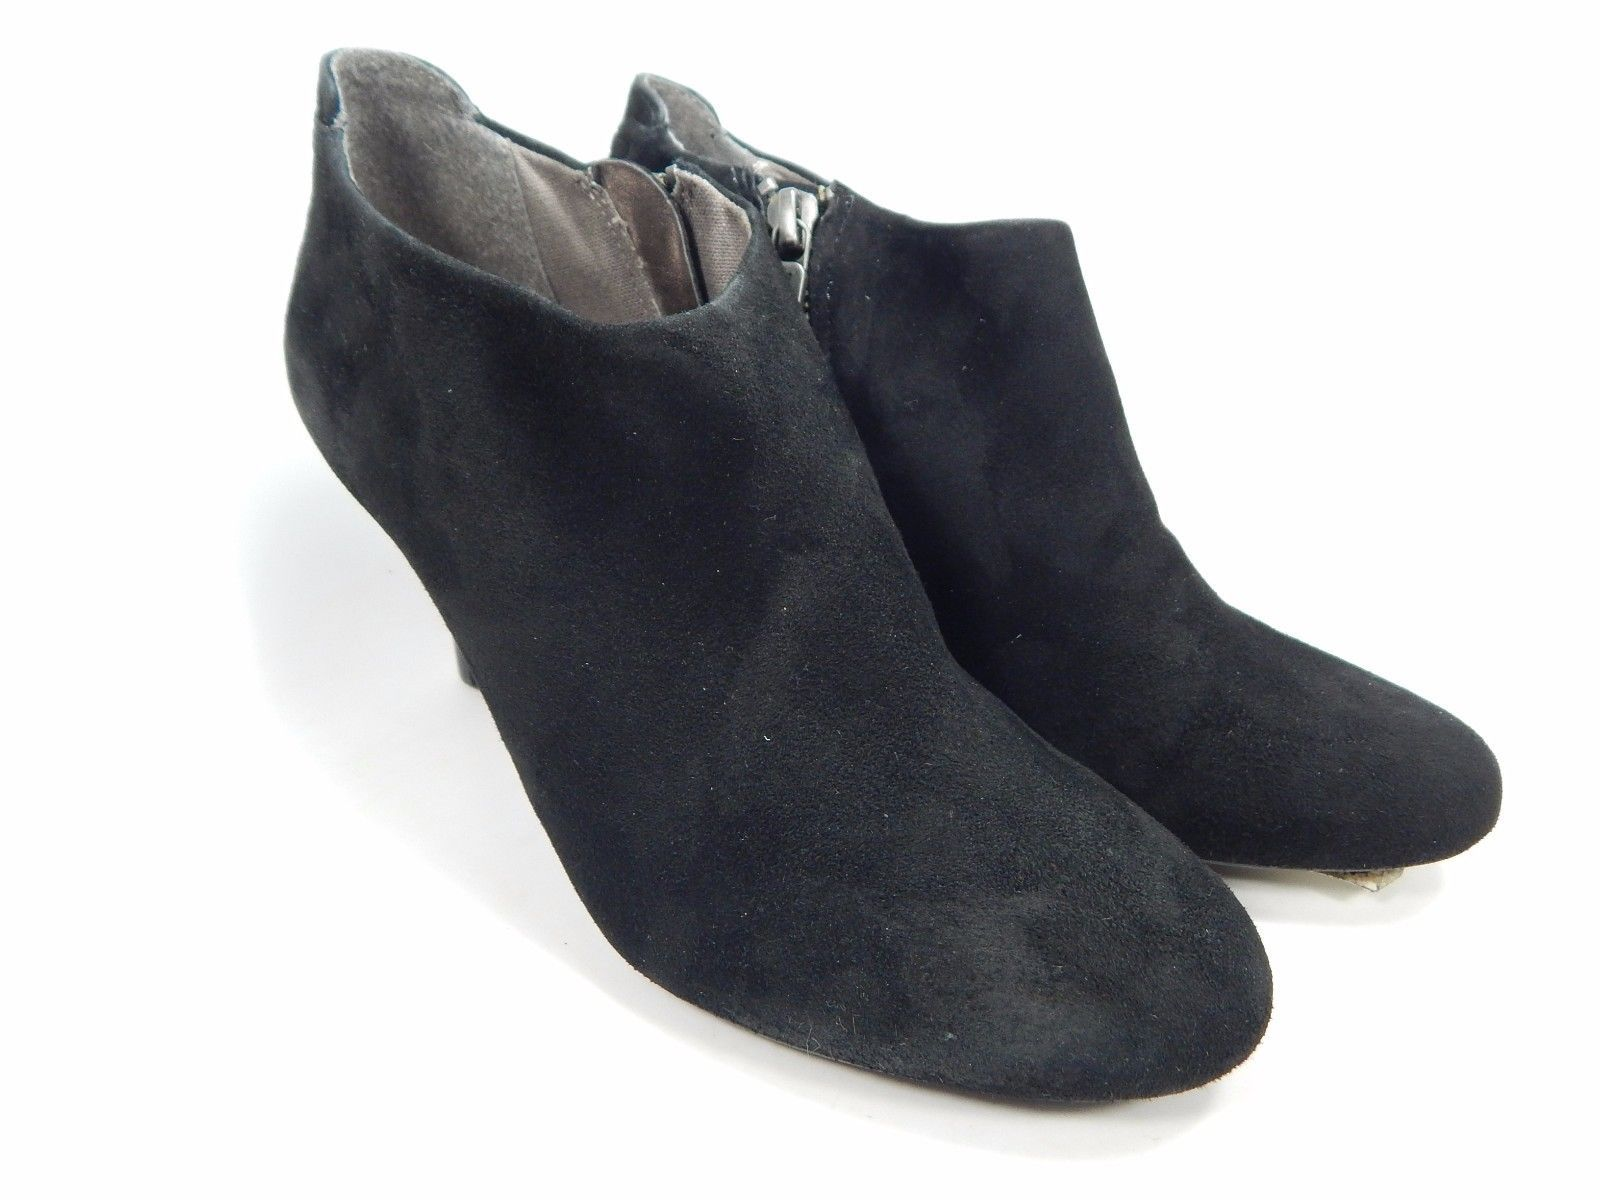 DKNY Samira Suede Ankle Booties Women's Size US 6 M (B) Black $149